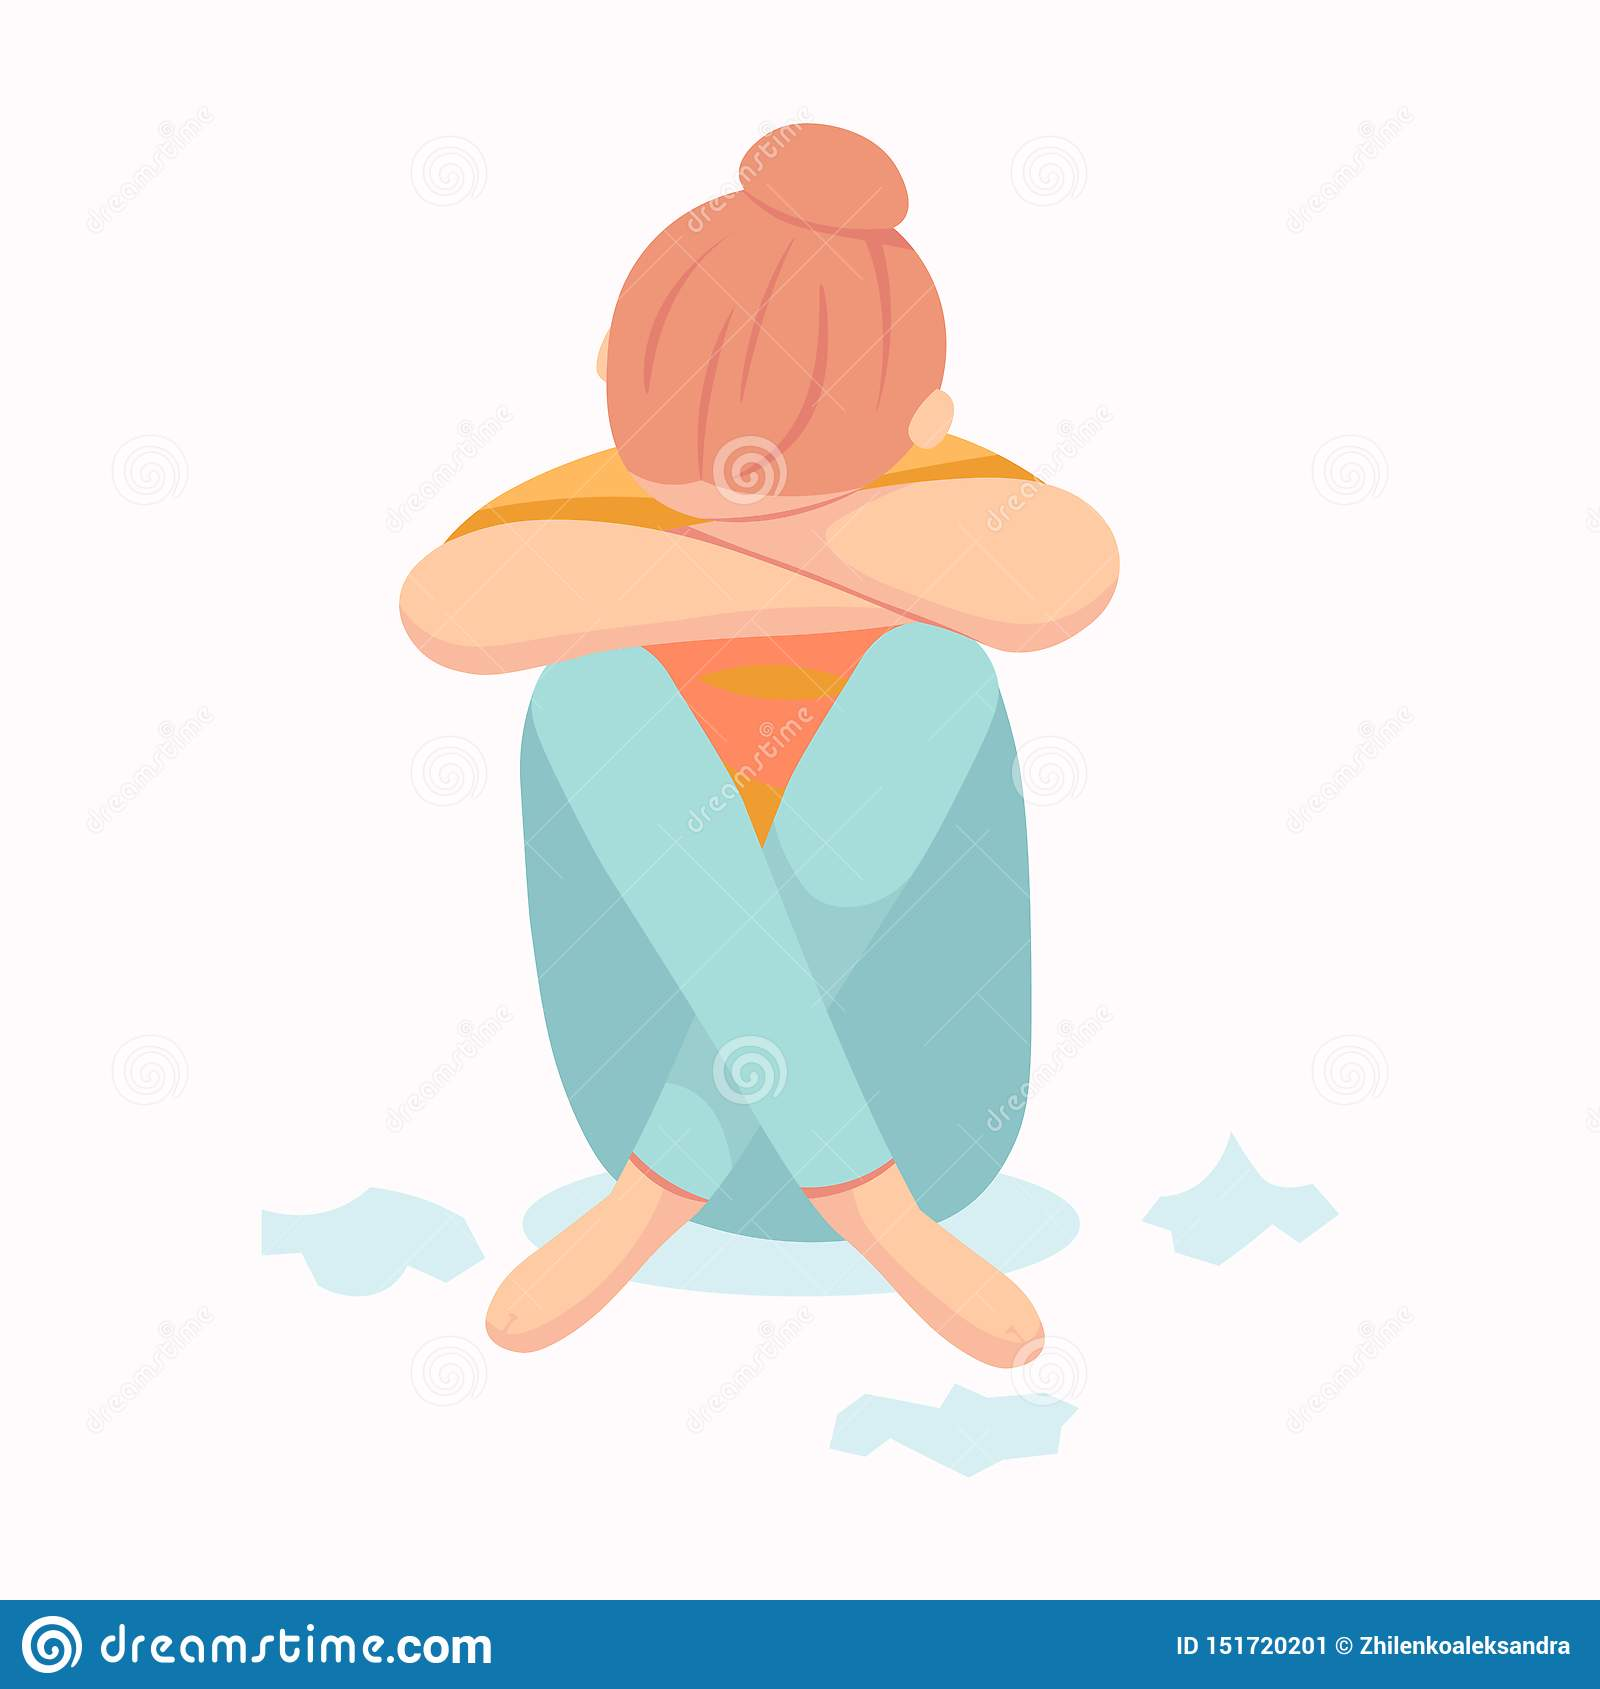 Postpartum Depression Postnatal Depression Baby S Blues Cartoon Vector Hand Drawn Eps 10 Illustration Isolated On Stock Vector Illustration Of Feelings Crying 151720201